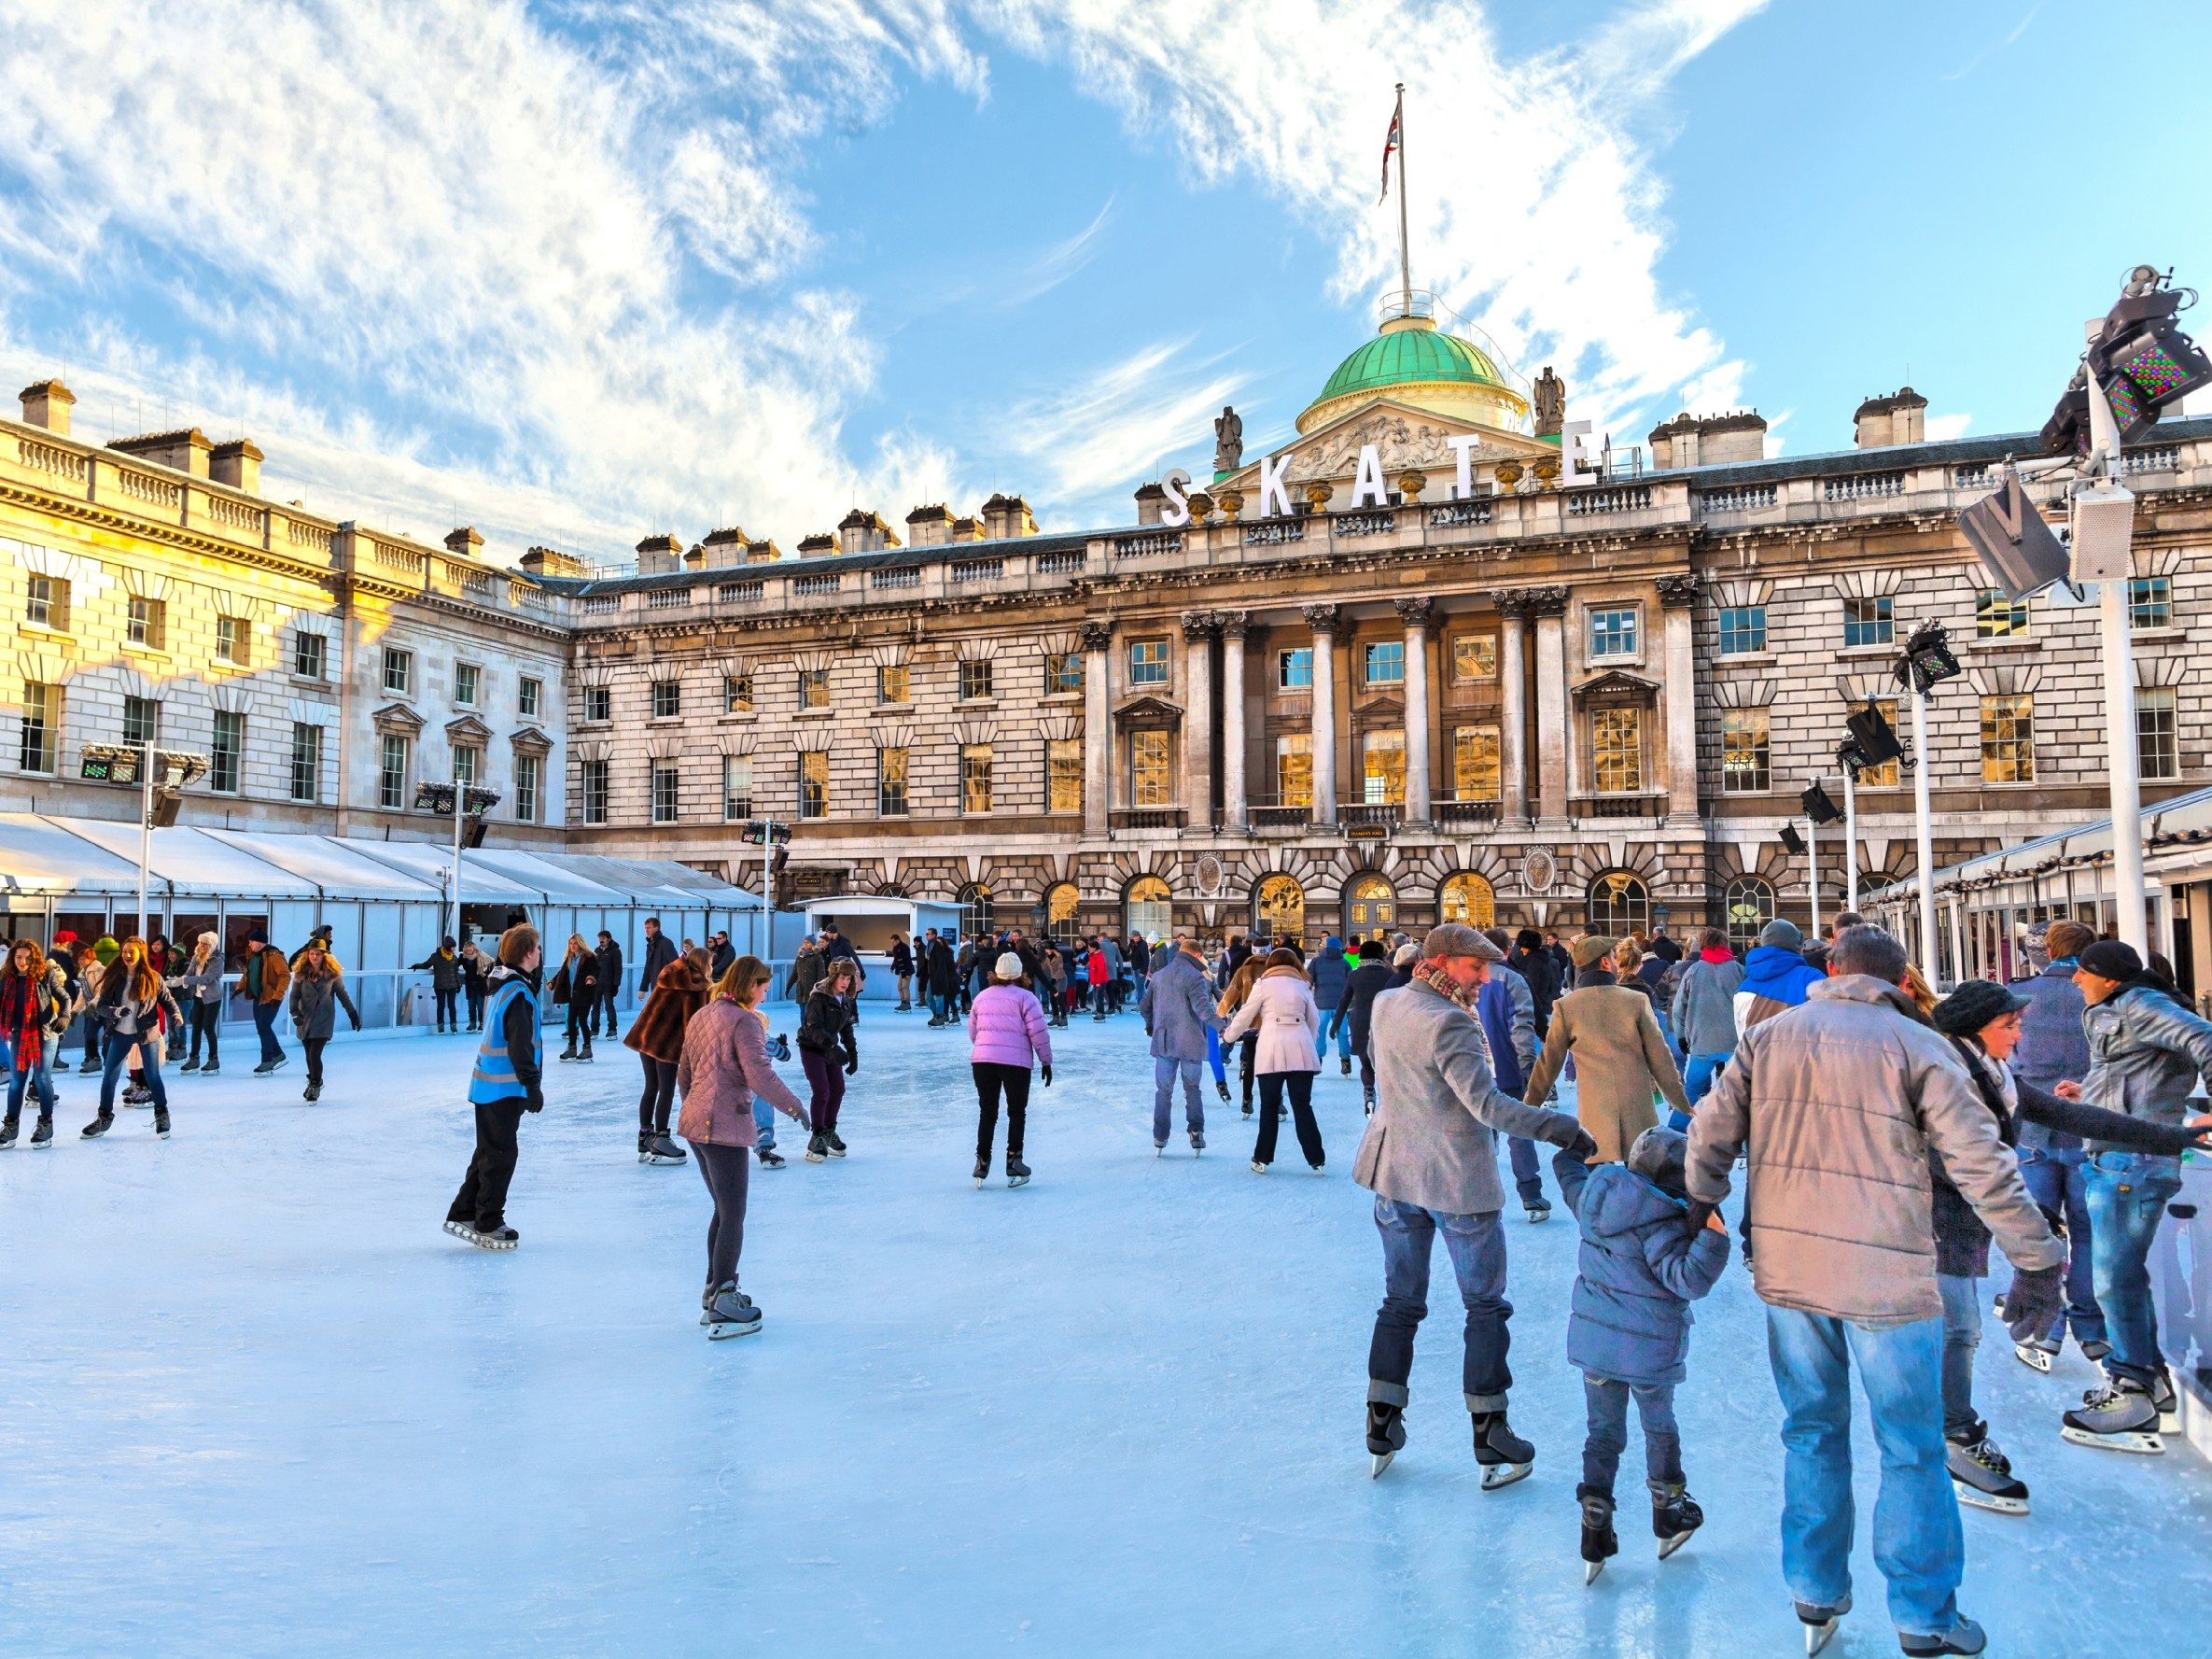 41. Somerset House